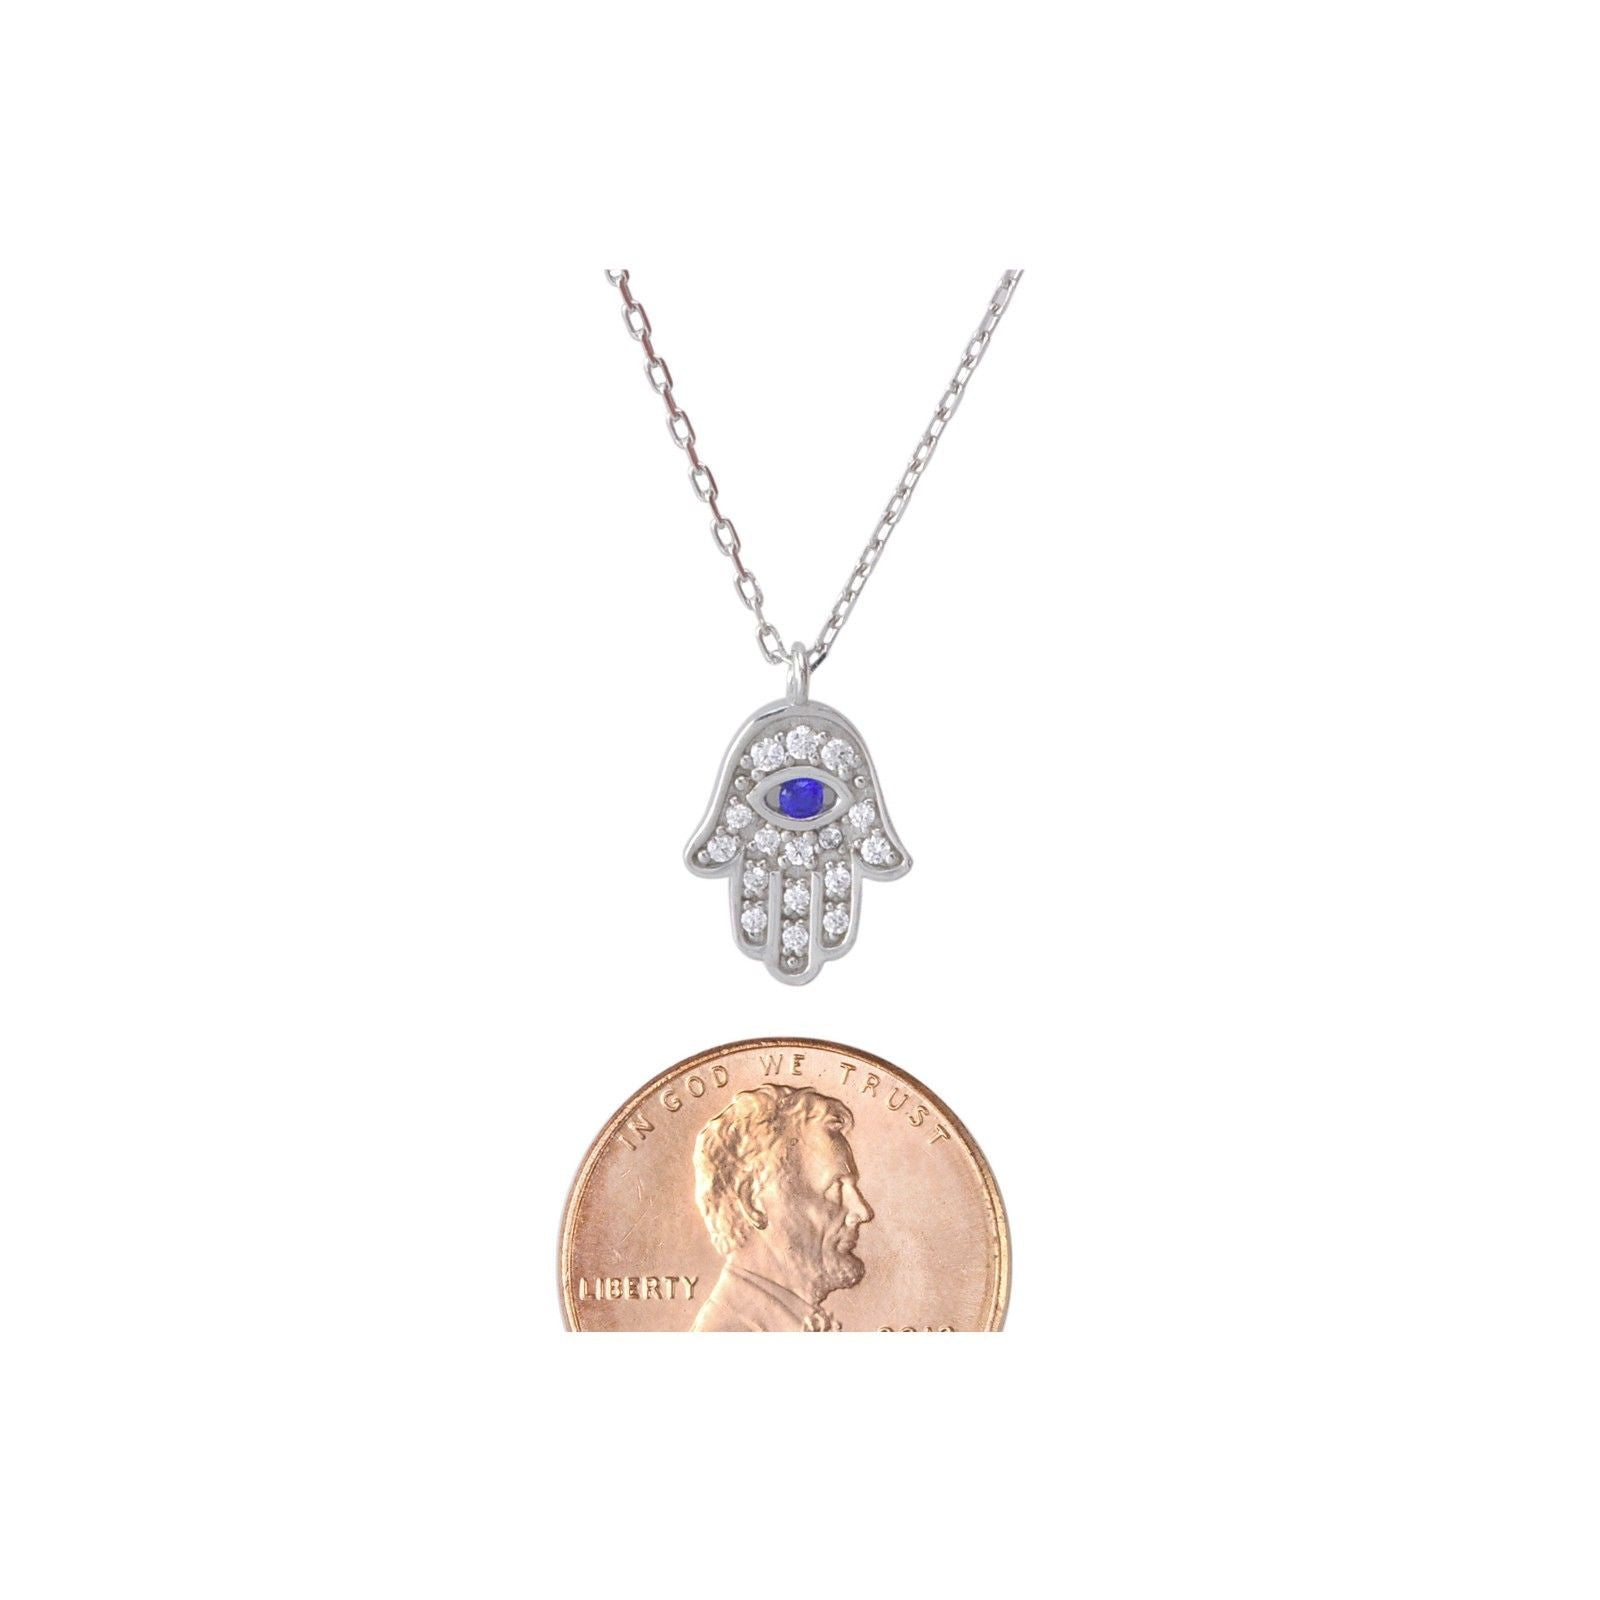 Cubic zirconia necklaces jewelryland hamsa necklace 925 sterling silver hand of god evil eye 17 chain aloadofball Choice Image